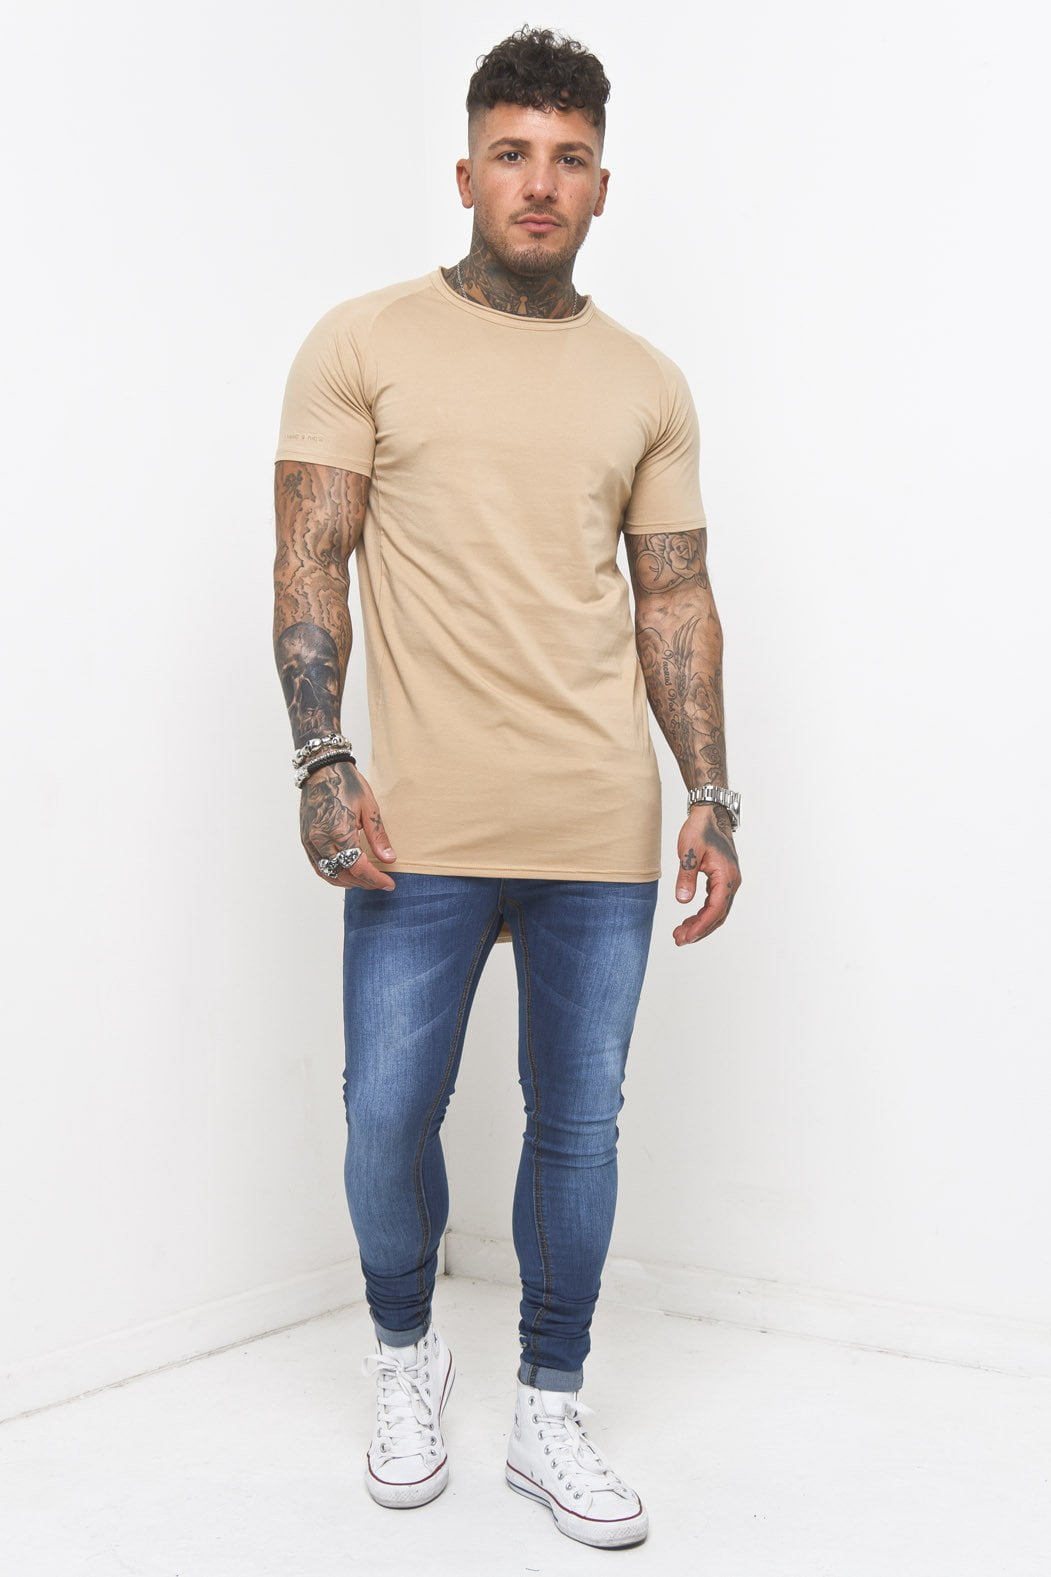 Muscle Fit T-Shirt In Beige - Liquor N Poker  Liquor N Poker